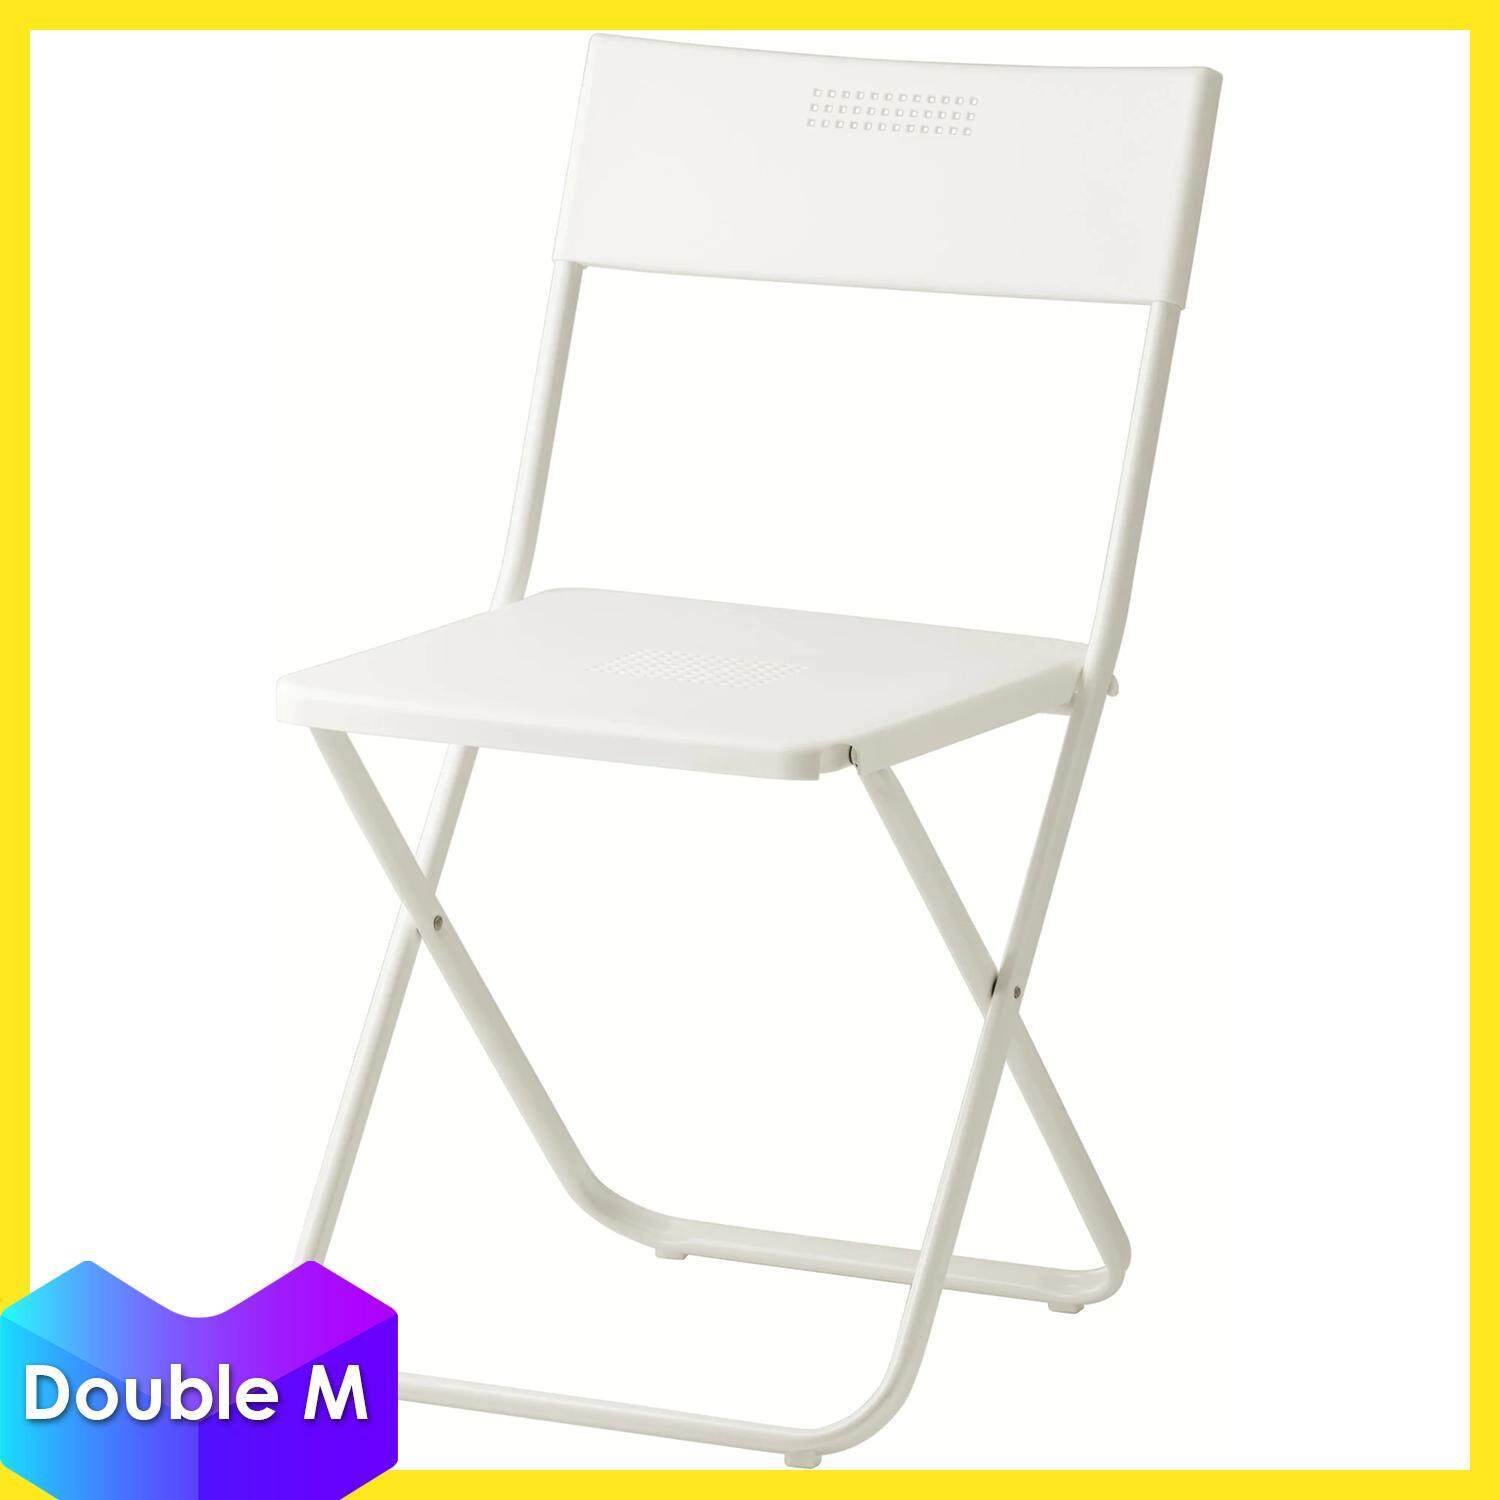 Ikea Fejan Polypropylene Plastic Easy Storage In Outdoor Foldable Chair White Lazada